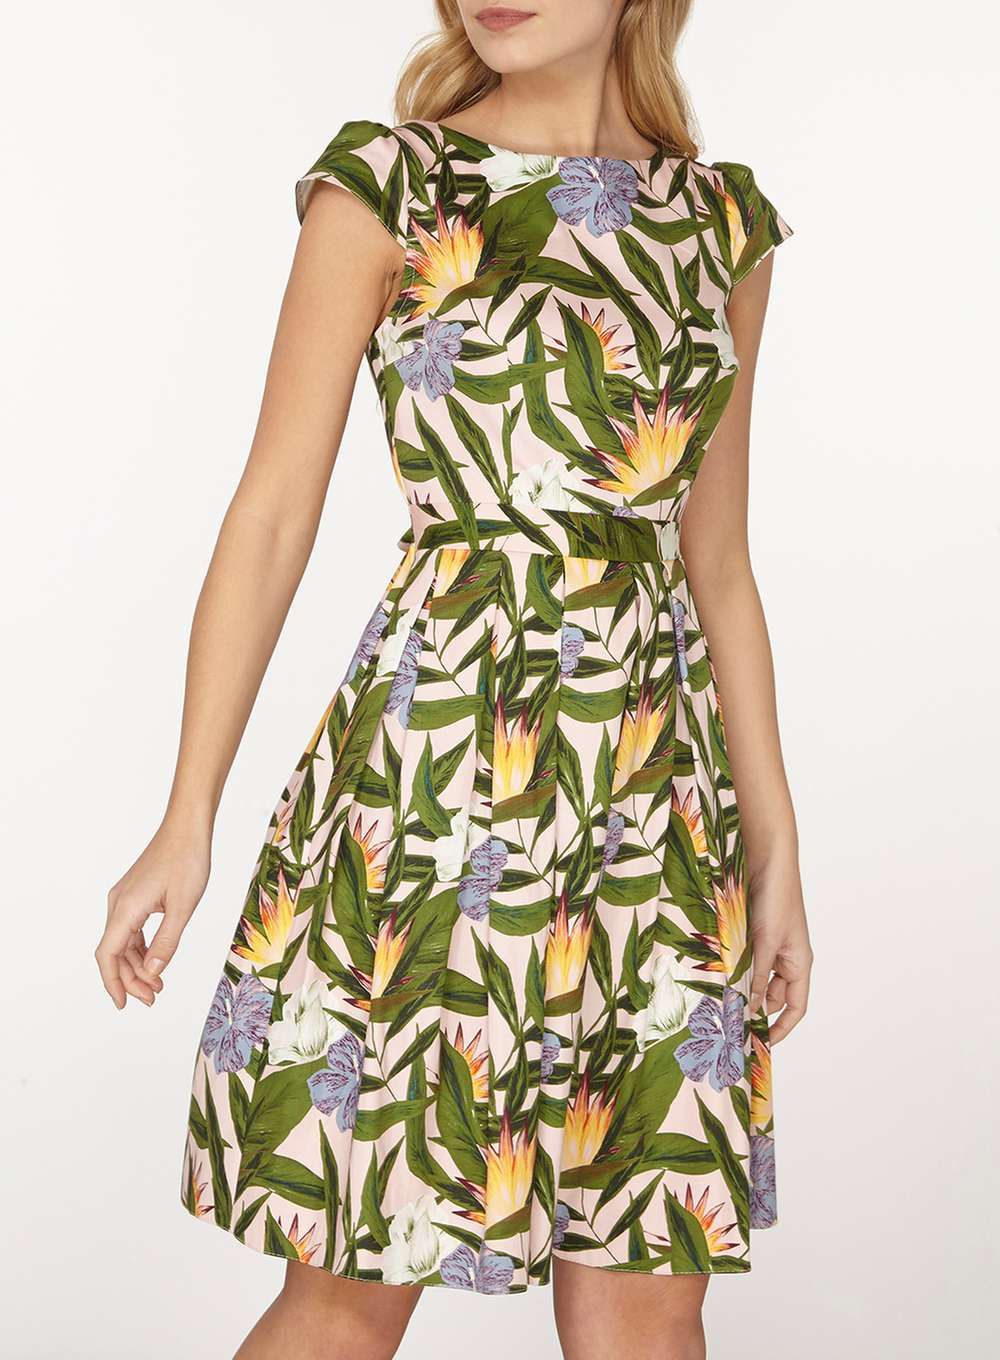 5a96d58a38 Tropical Print Cotton Fit & Flare Dress   Shopping   Fit flare dress ...